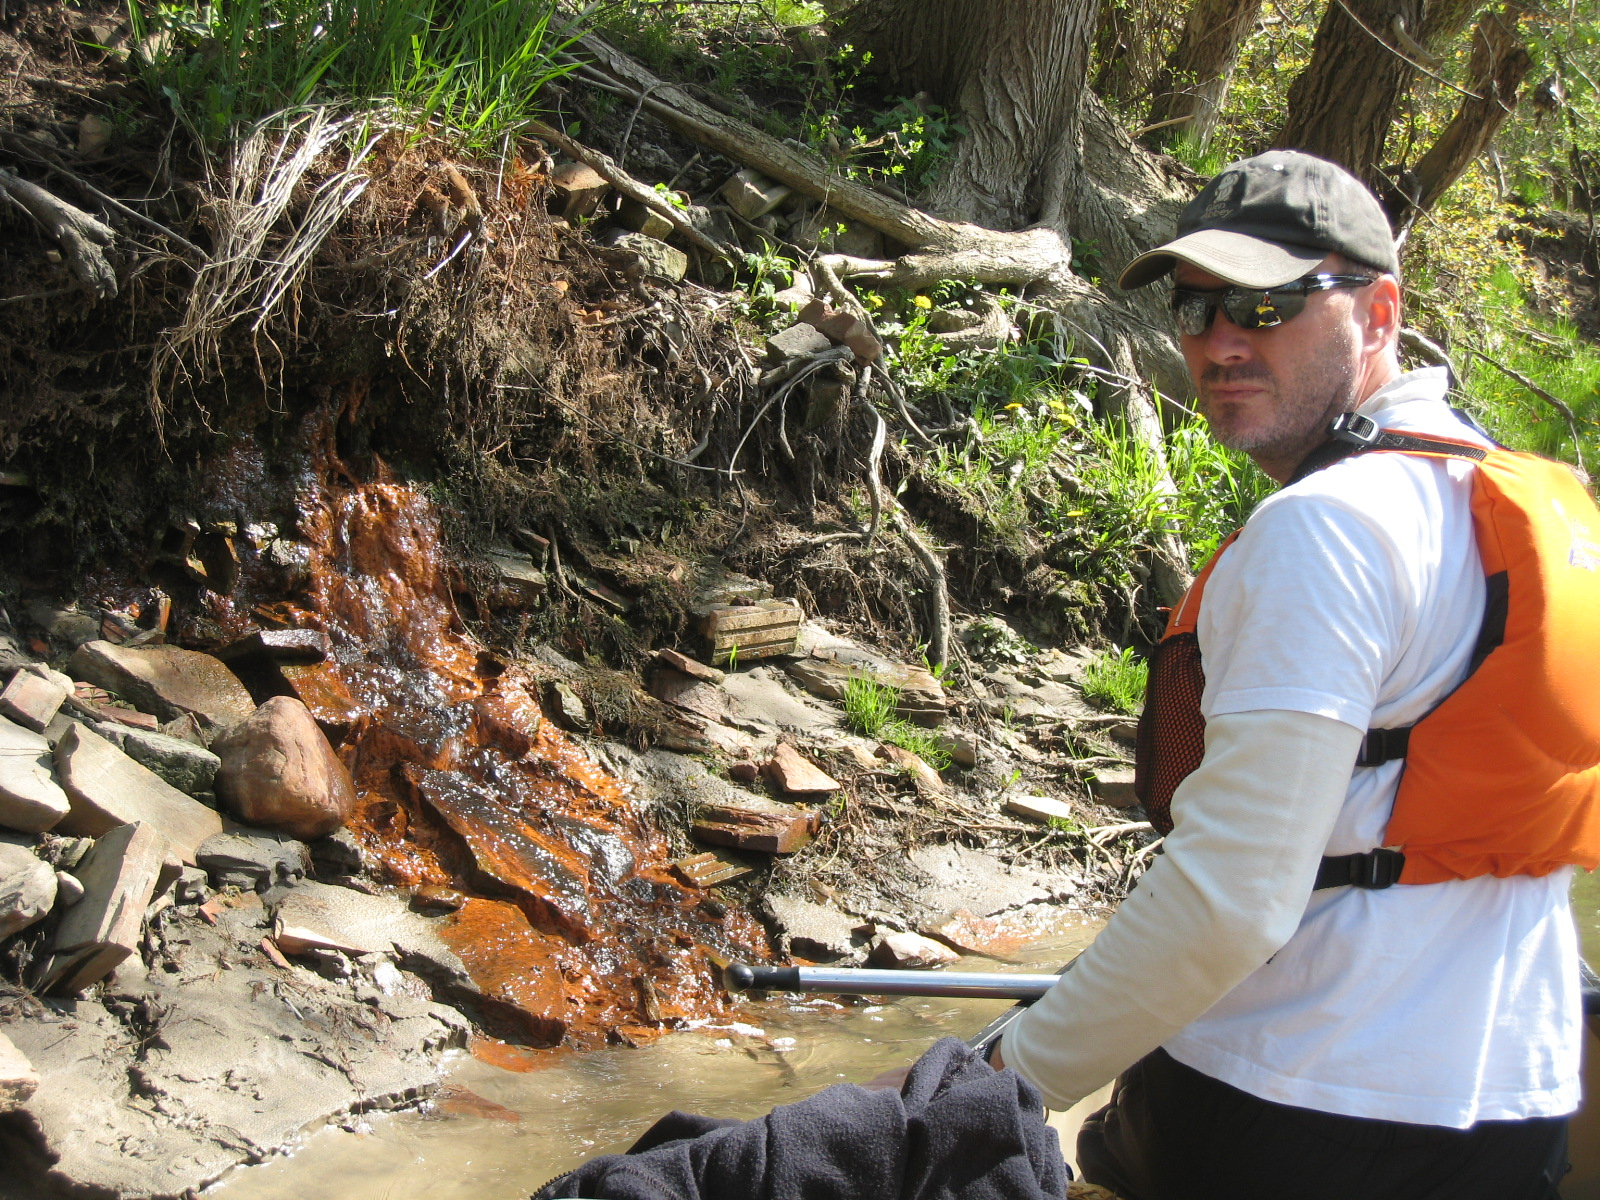 Mark Mattson investigates discharge into the Don River during the annual Paddle the Don event. (Photo credit: Julia Hambleton)